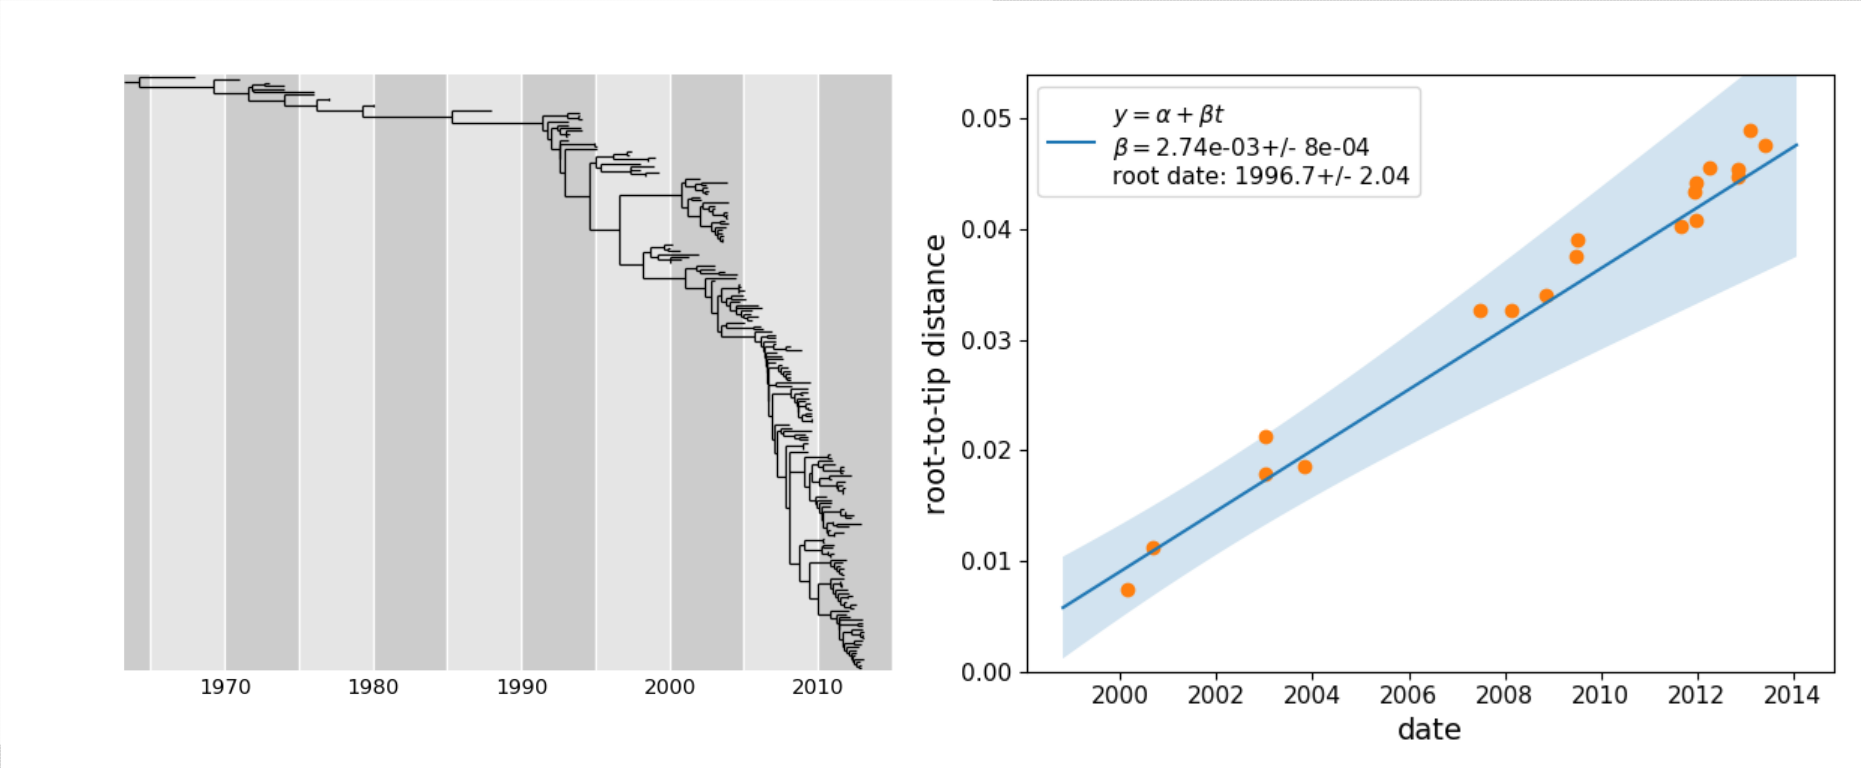 Molecular clock phylogeny of 200 NA sequences of influenza A H3N2